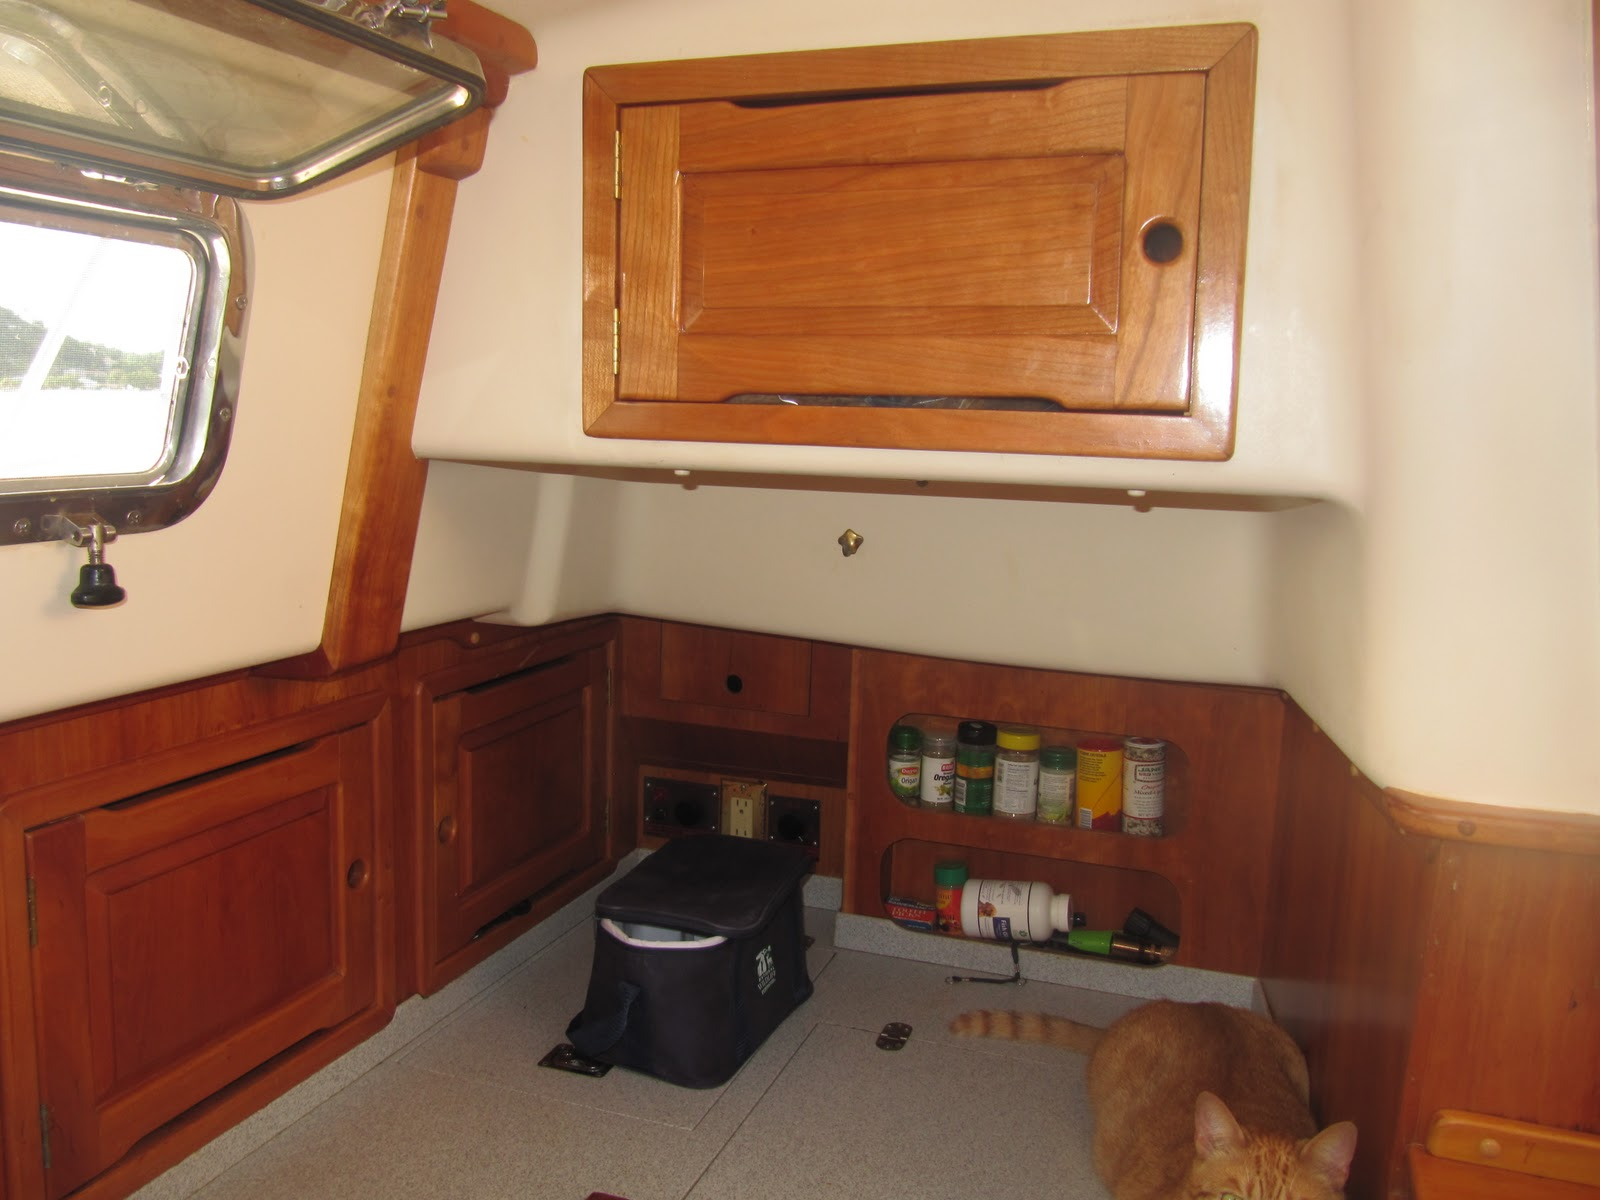 Marine solar panel installations first mate marine inc - Since We Are Talking About Grenada Marine Here Top Center Is A Pic Of The Newly Built Cabinet To Replace The Old Microwave They Took Off The Door Shown